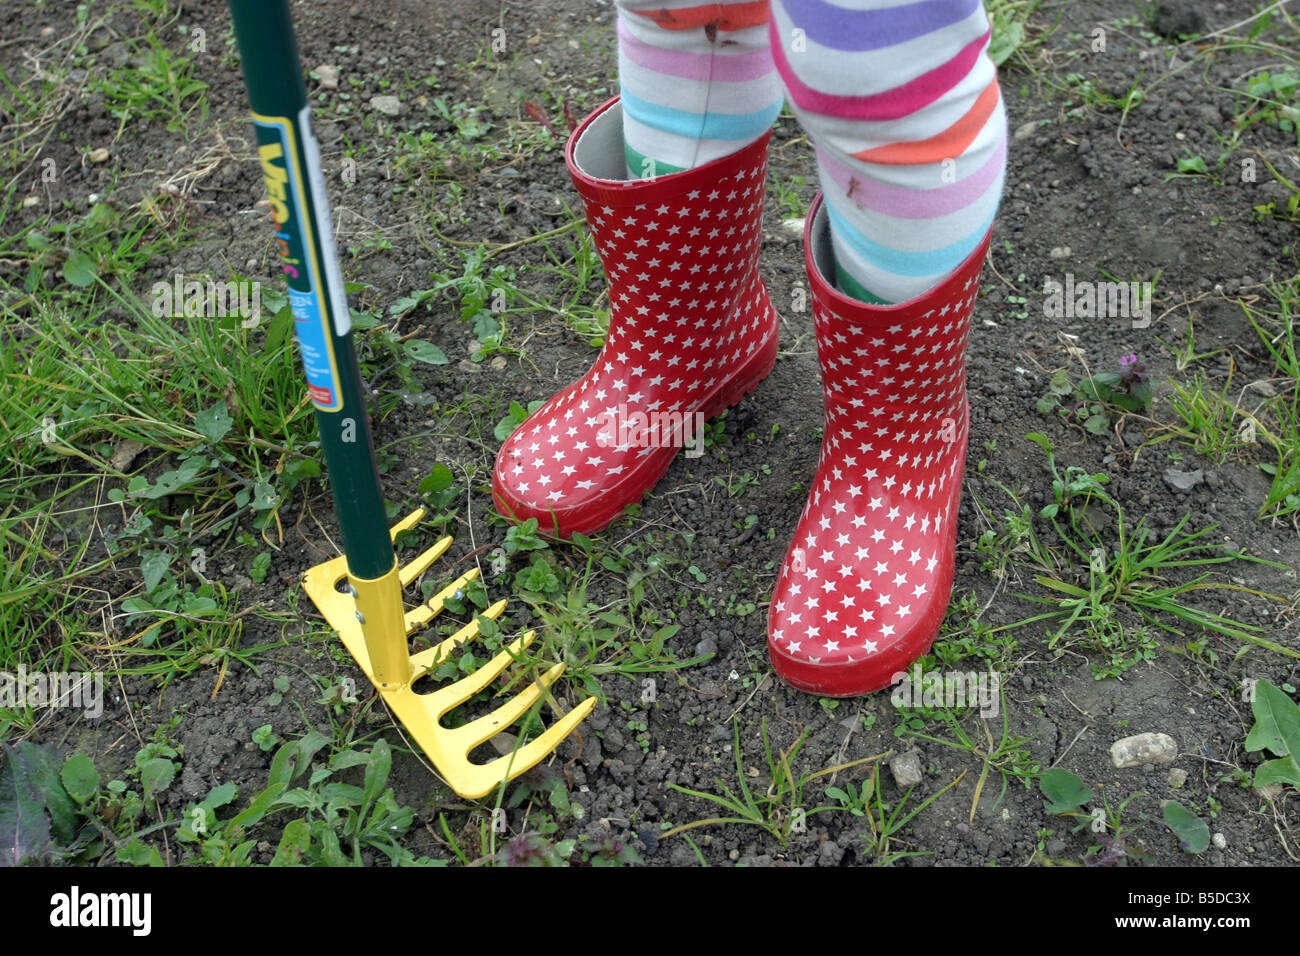 Young Girl wearing red Welly Boots on an allotment Stock Photo ... bdc7d31fbe4d